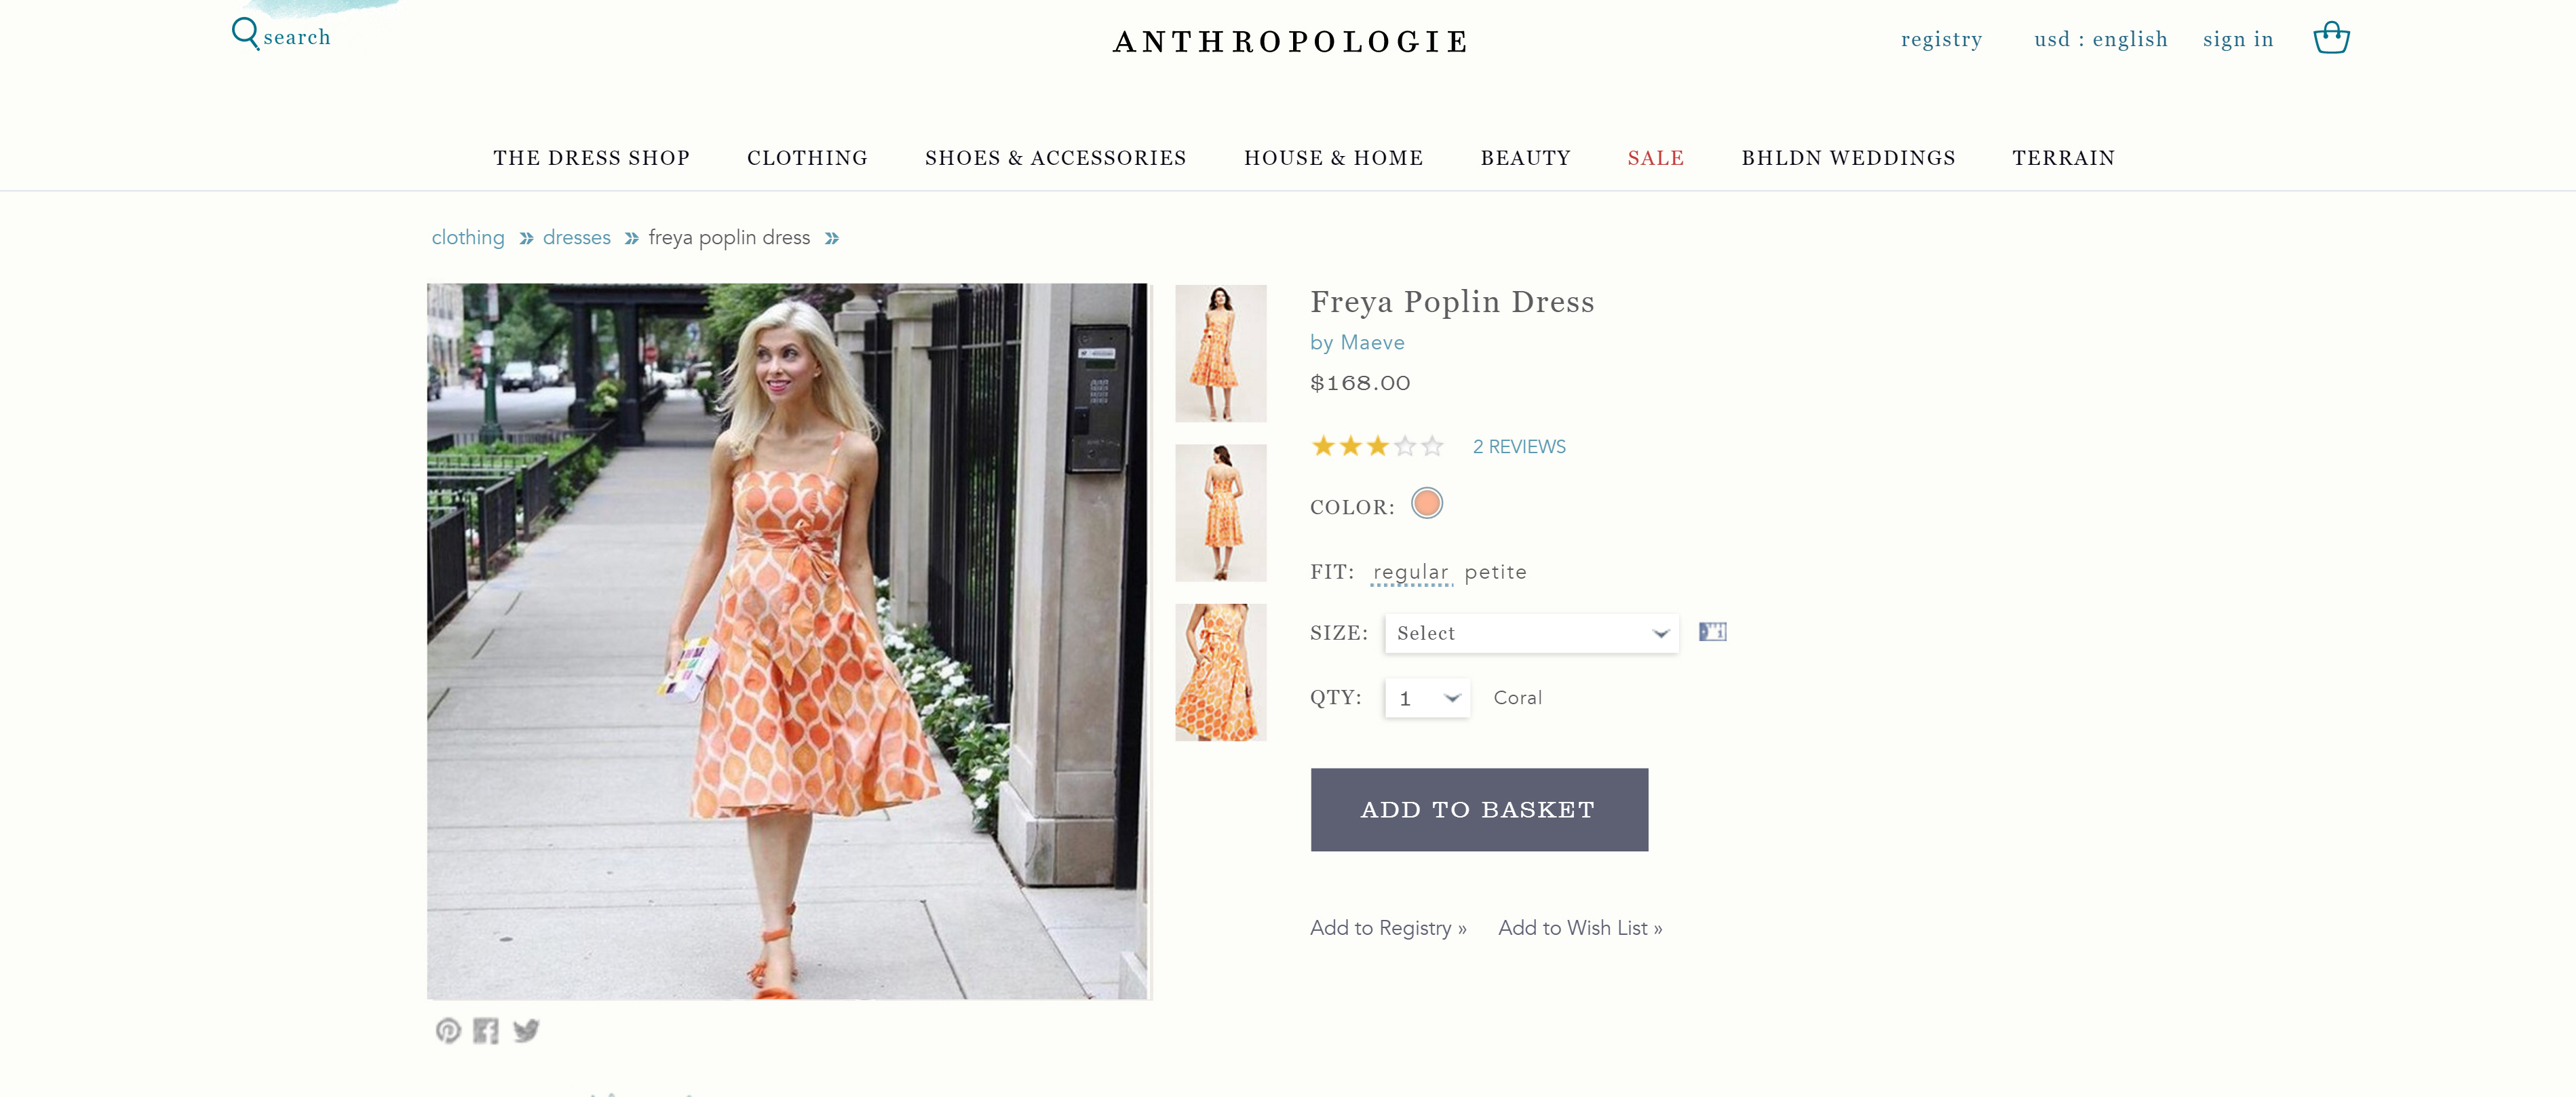 Anthropologie Feature 3 - 6.23.2016